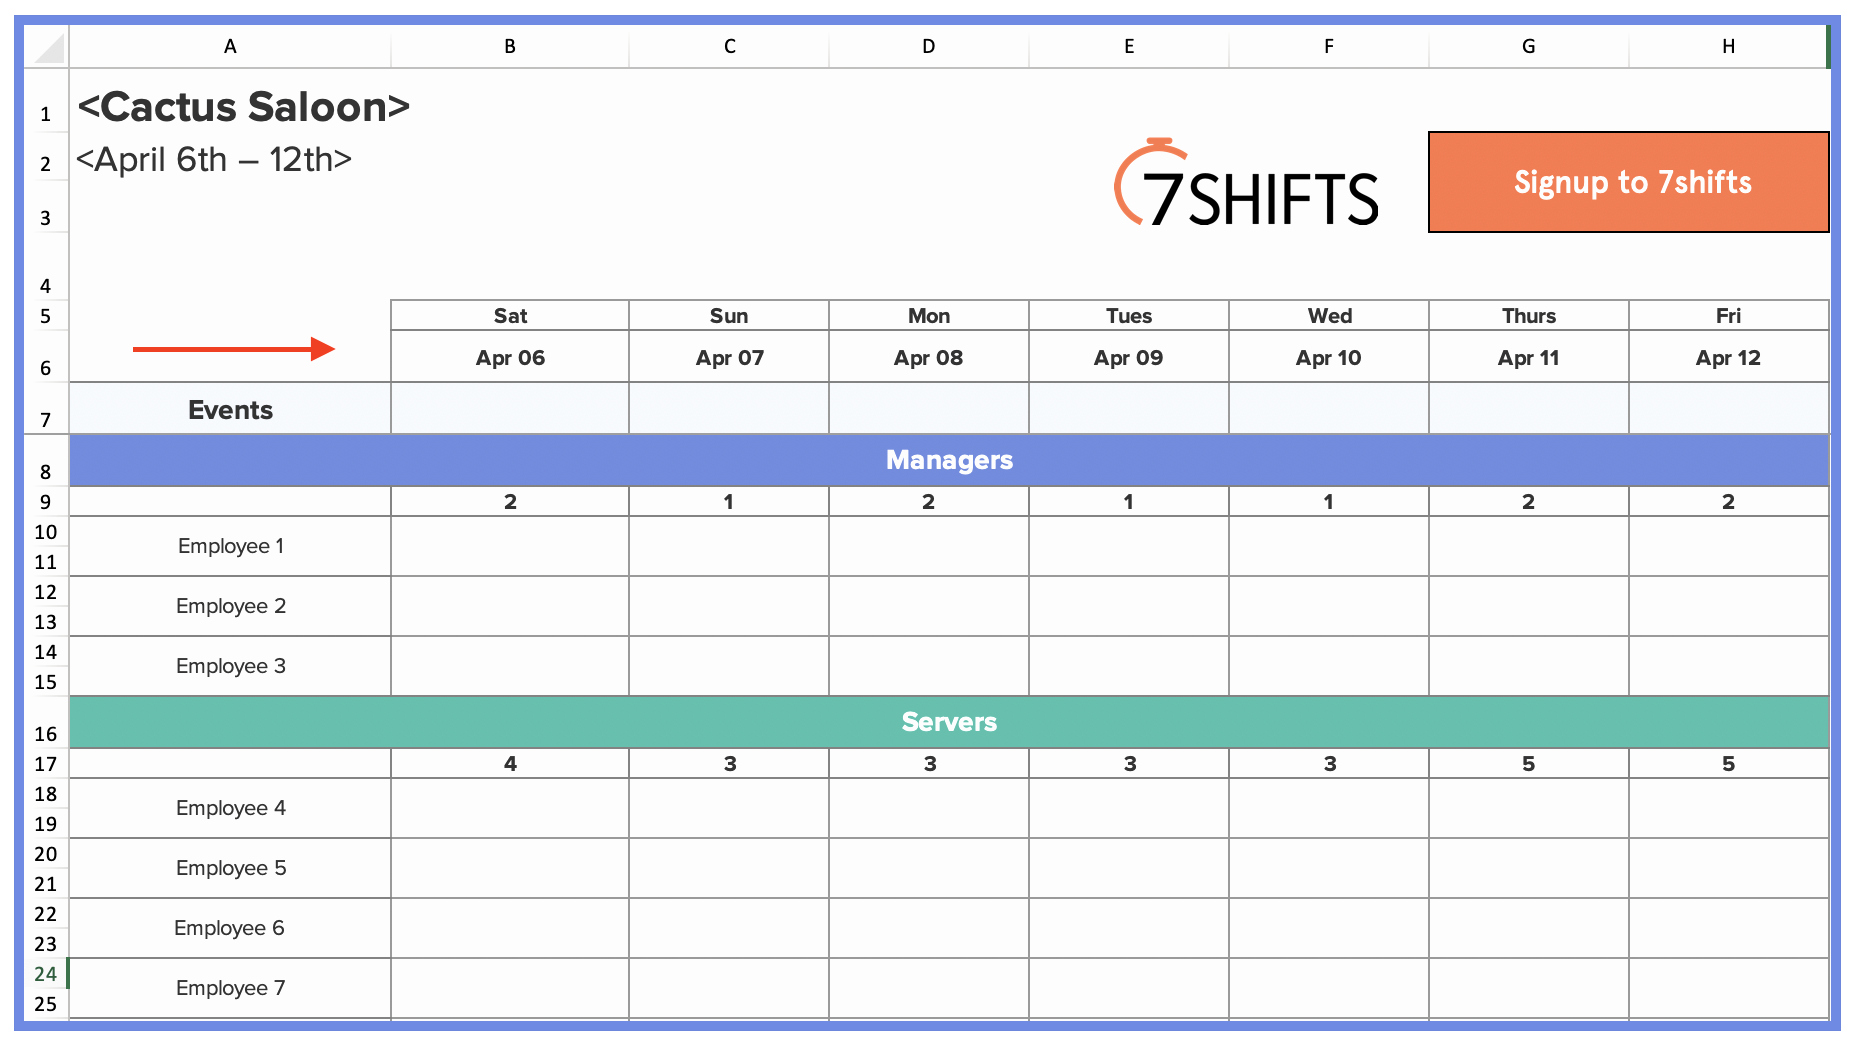 Work Schedule Template Excel Fresh How to Make A Restaurant Work Schedule with Free Excel